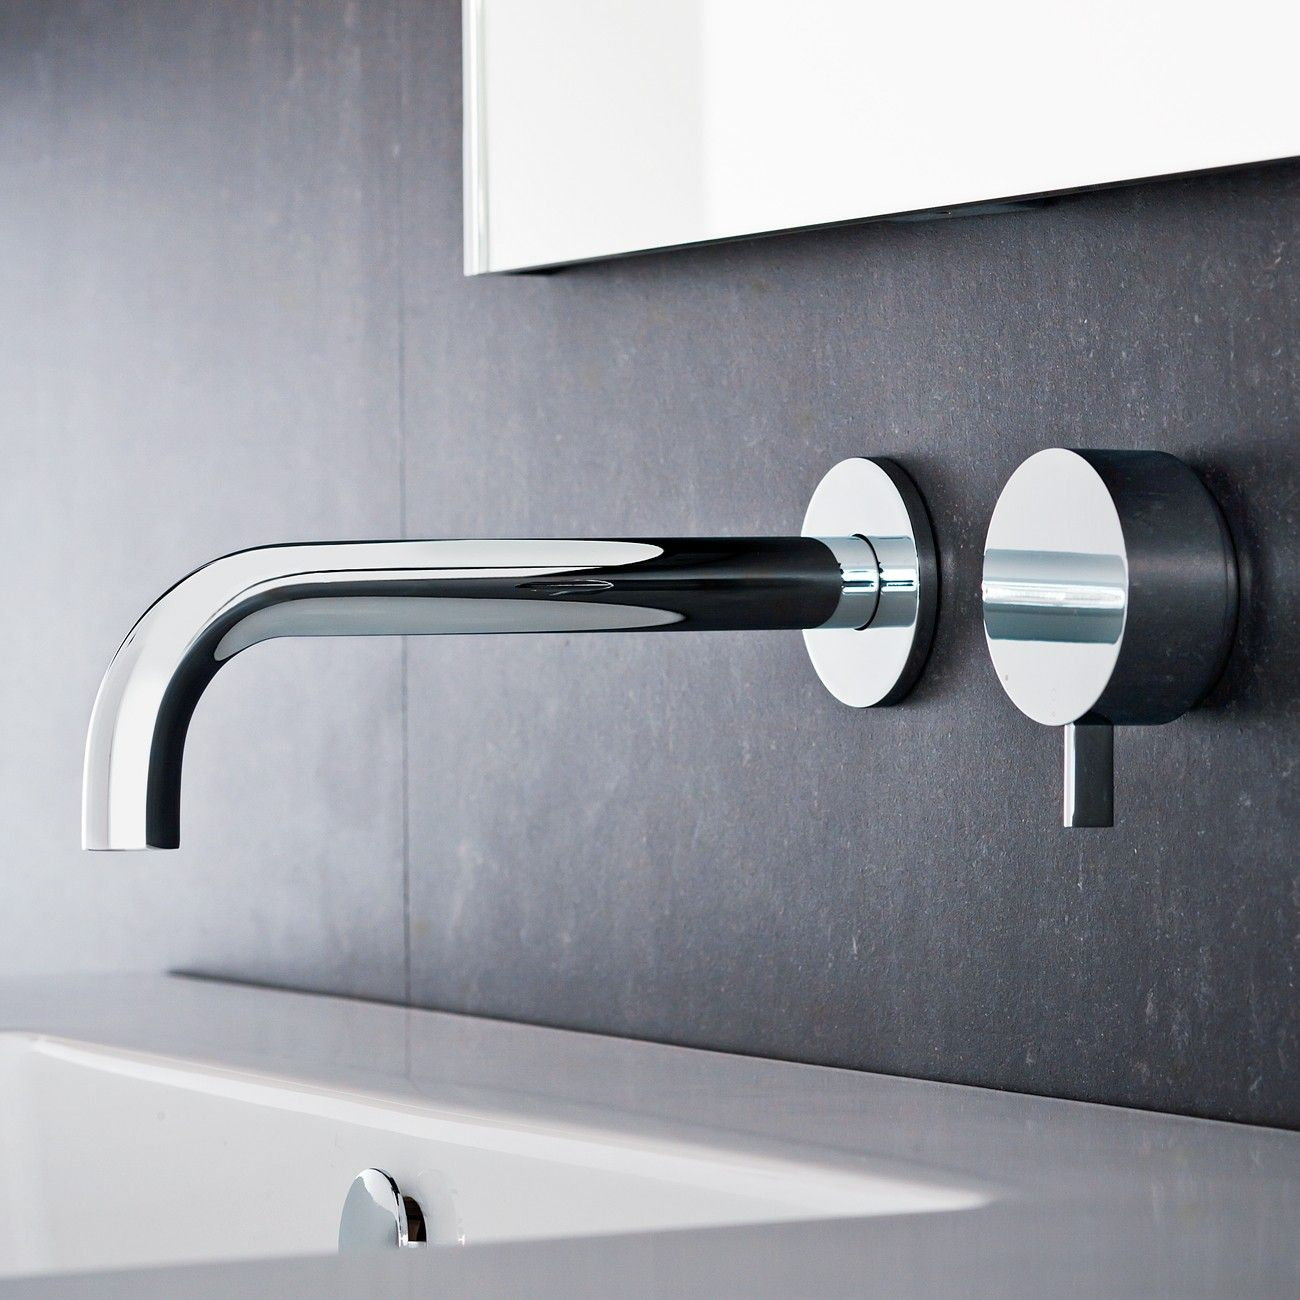 Bathroom tap designs - Love The Simple Modern Temp Control Leading Italian Manufacturer Fantini Commissioned One Of The World S Most Influential Designers Naoto Fukasawa